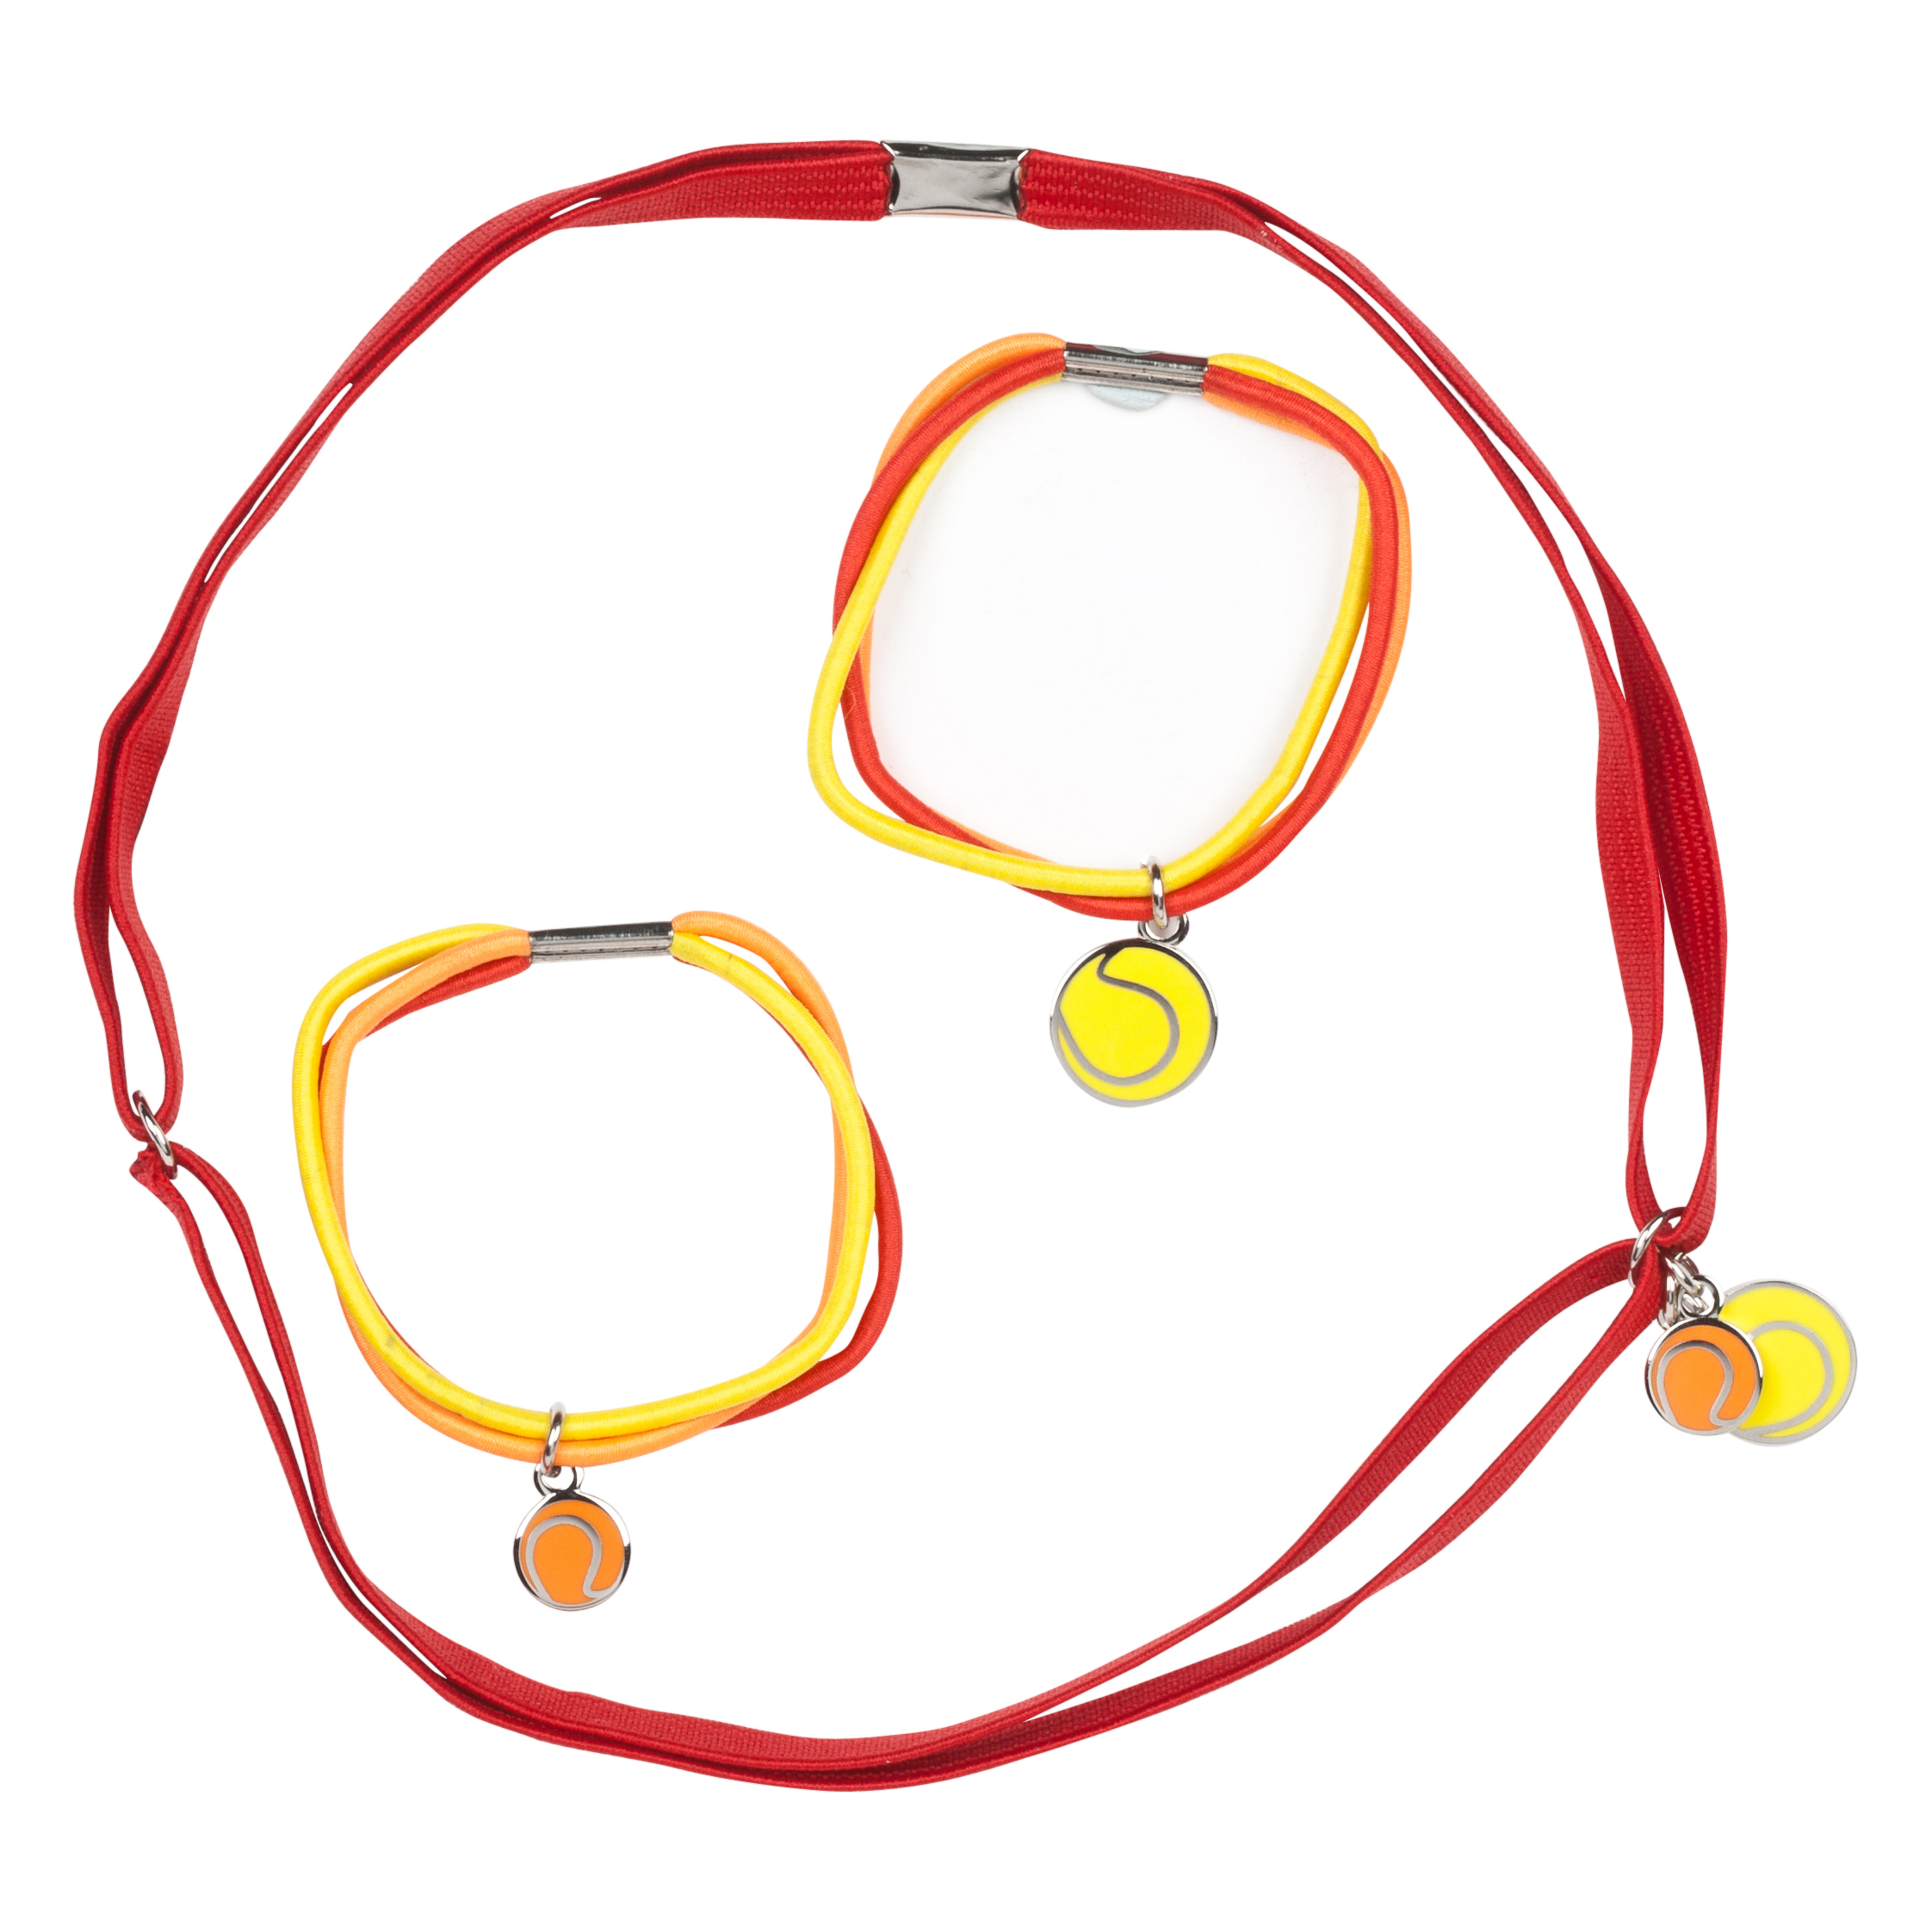 Roland-Garros Headband - Red